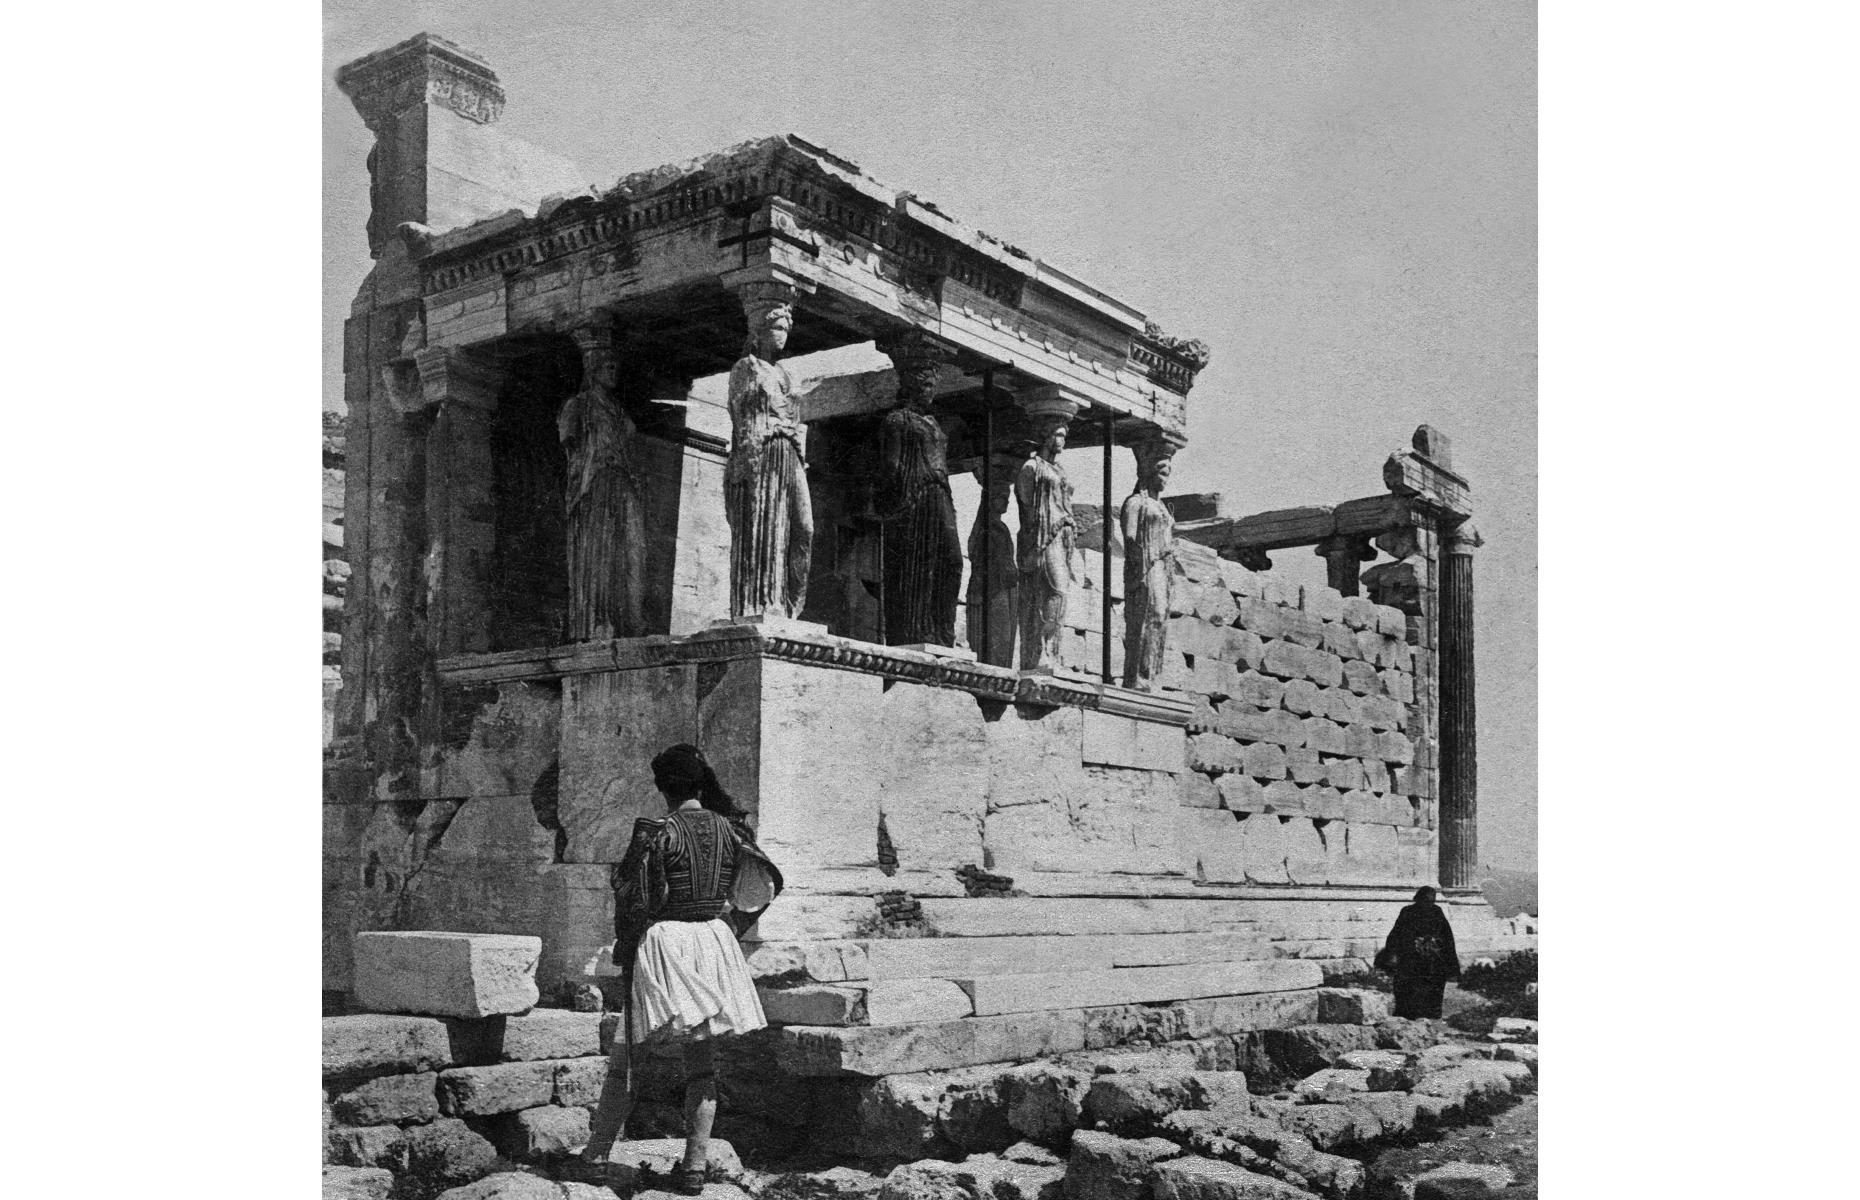 Slide 13 of 51: The UNESCO World Heritage Site of Acropolis in Athens is one of the oldest and most famous archaeological sites in the world. Located on a limestone hill above the city, it has been inhabited since prehistoric times, and today it's a popular attraction usually visited by 14.5 million people each year. Pictured here in 1897 is the Erechtheion Temple, which was built between 421 and 406 BC.